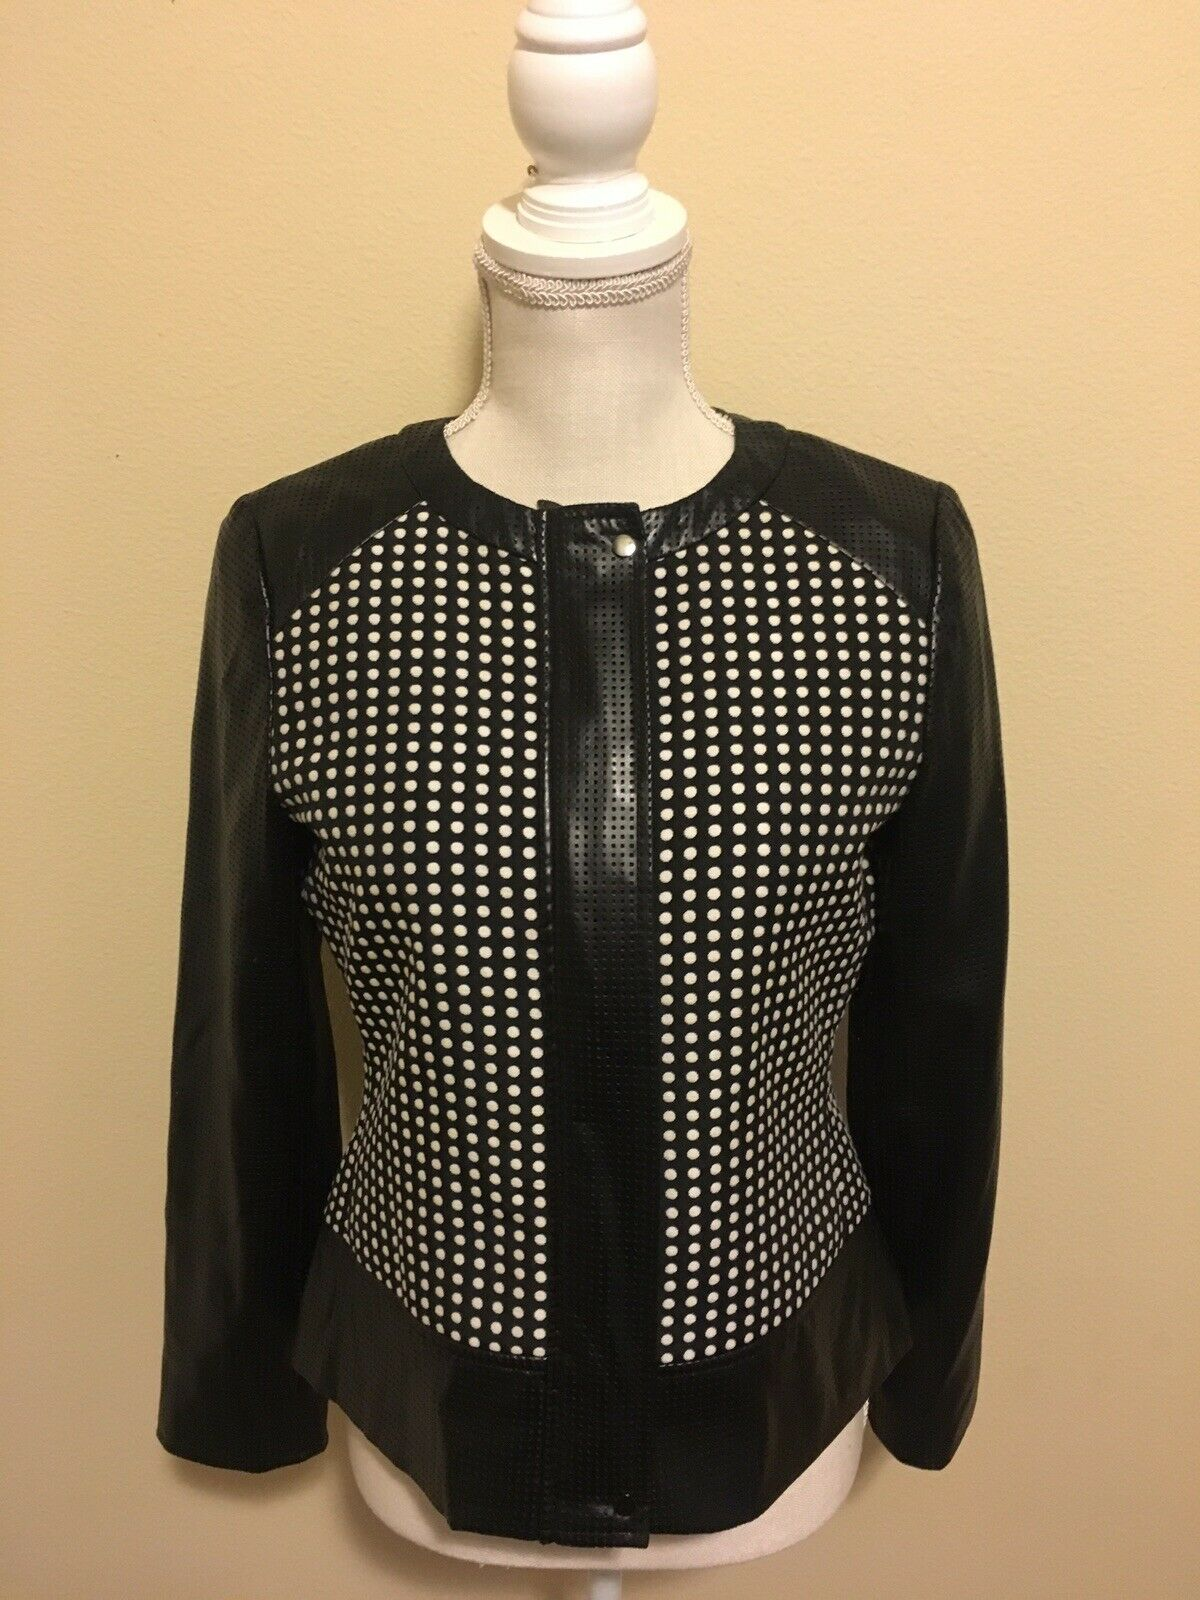 Doncaster Wmn 4 Black Leather Look With Polka Dots Cropped Zip Up~Snap Jacket